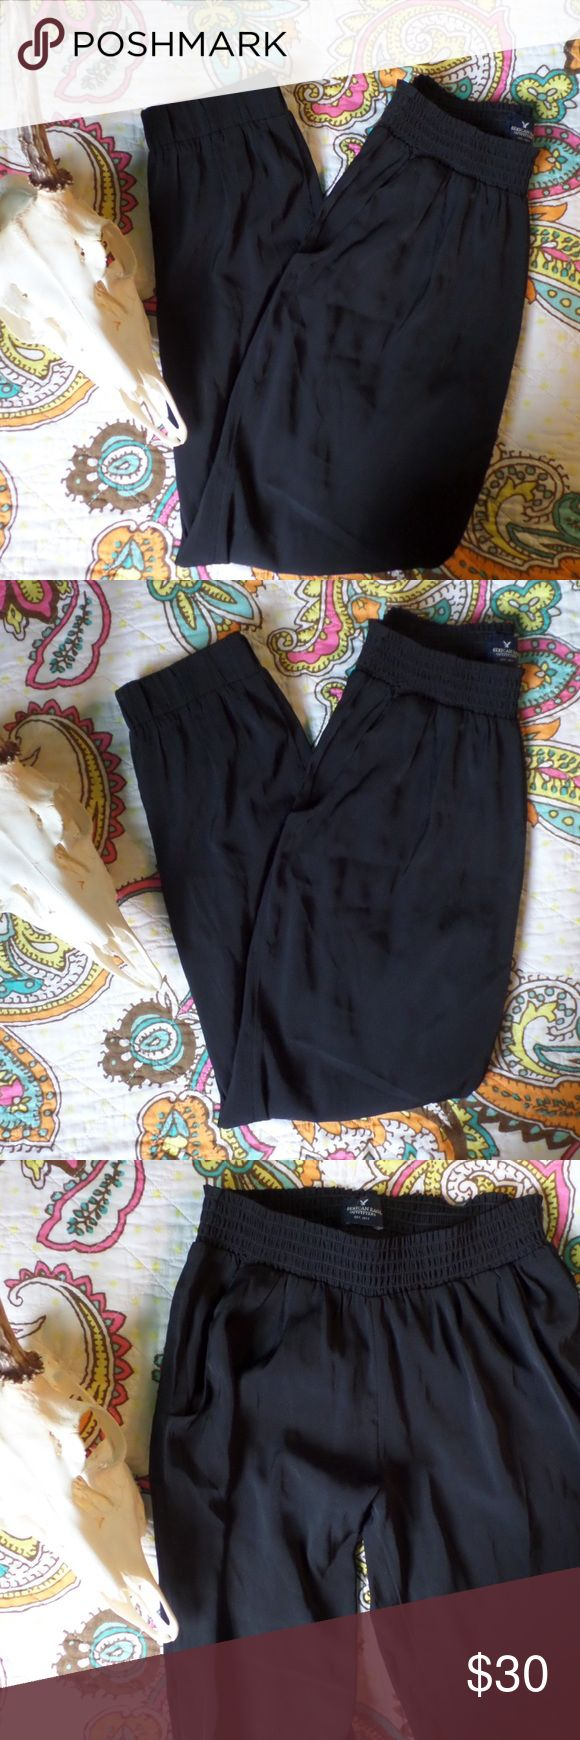 AE Black Lightweight Pants Never worn. Perfect condition. Front pockets. Super cute and lightweight. Fabulous for Spring and Summer. American Eagle Outfitters Pants